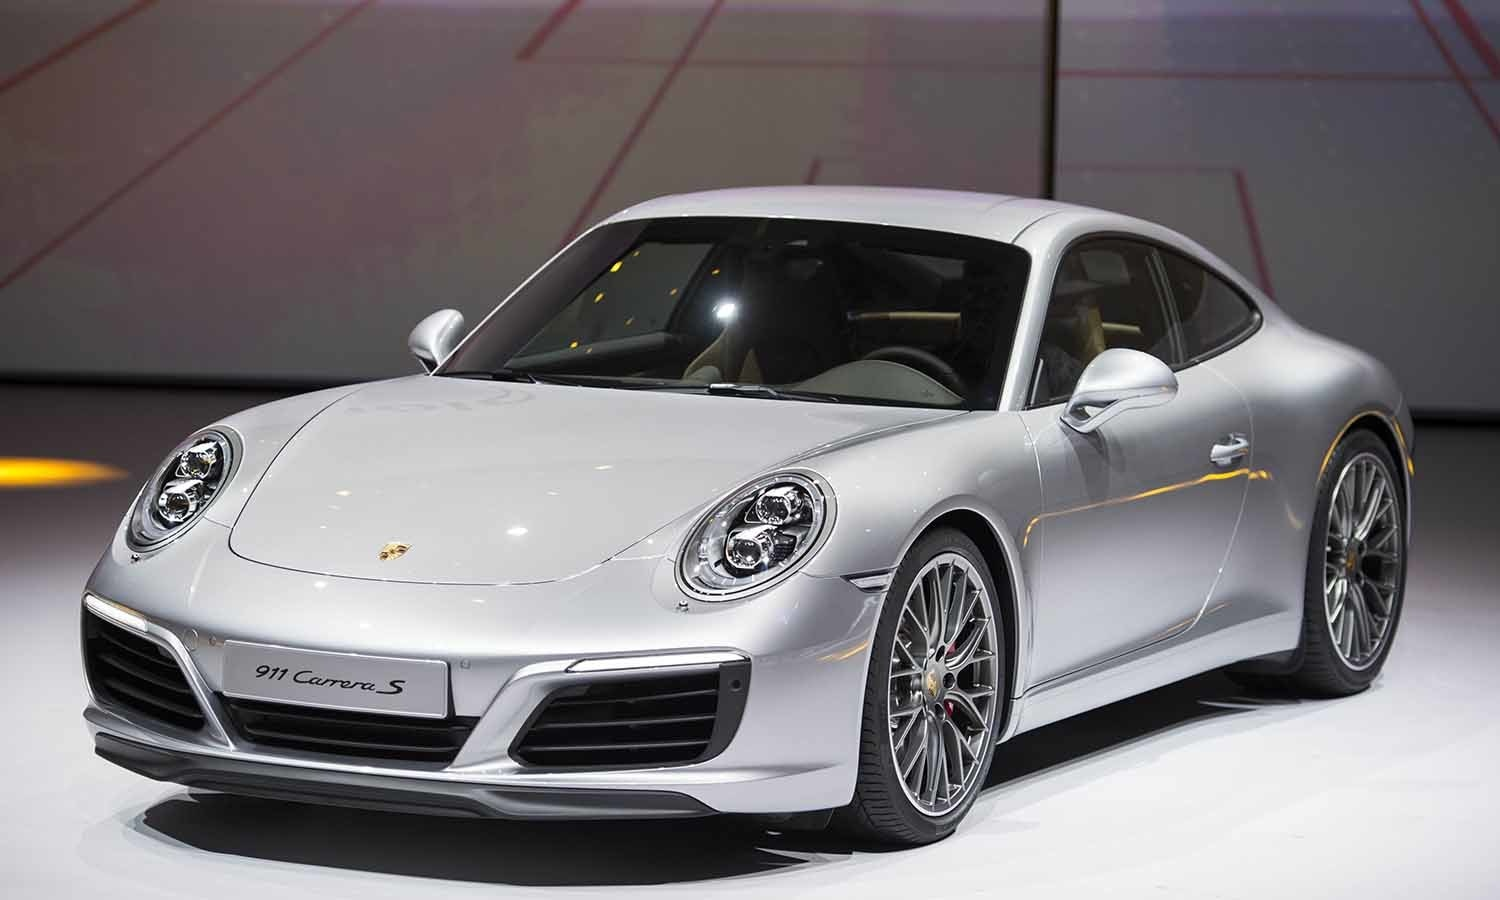 The new Porsche 911 Carrera S is presented during the Volkswagen group night. ─ AFP